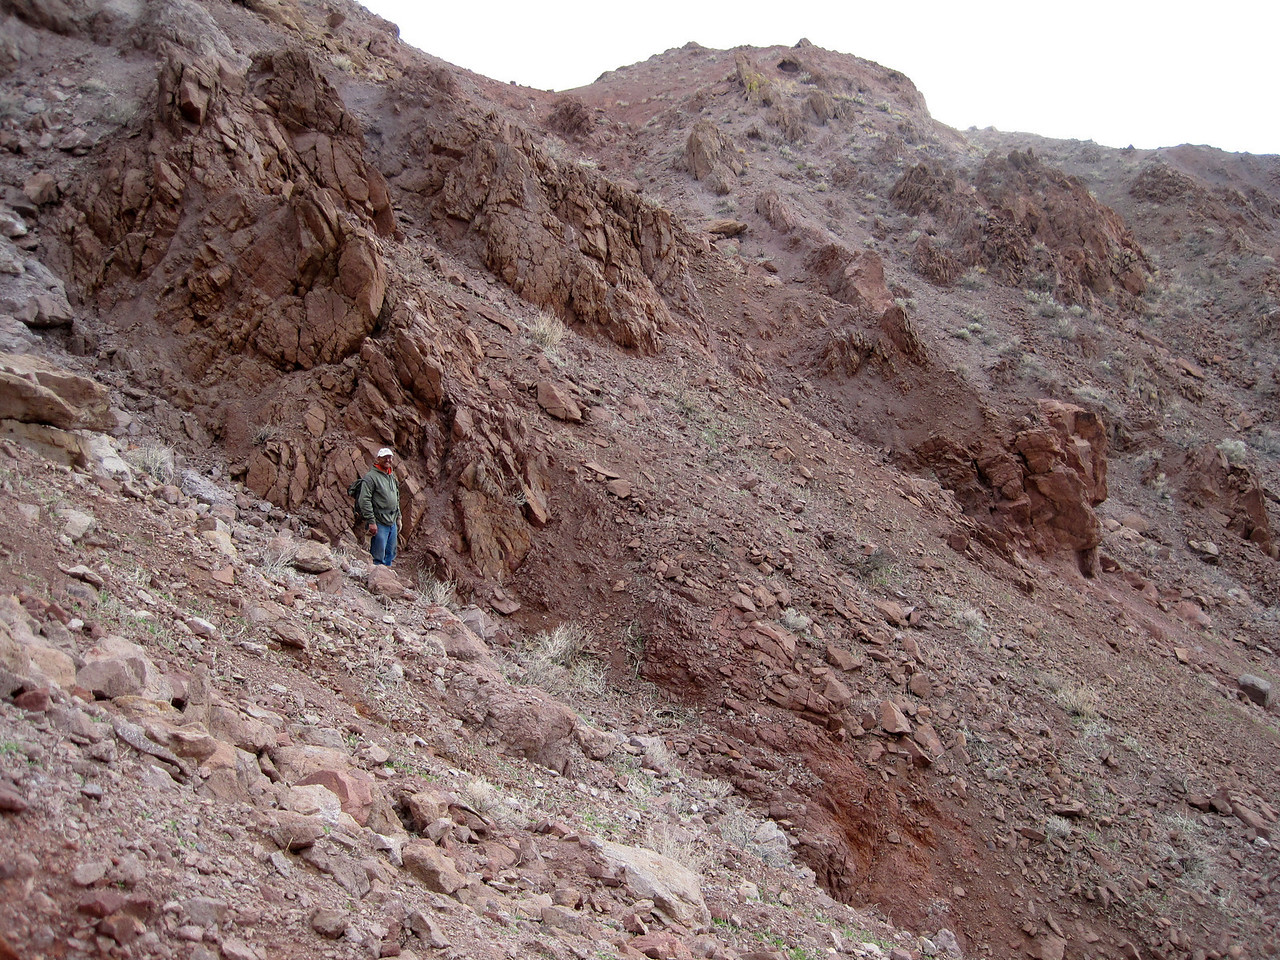 Luis navigating some of the tough terrain we encountered.